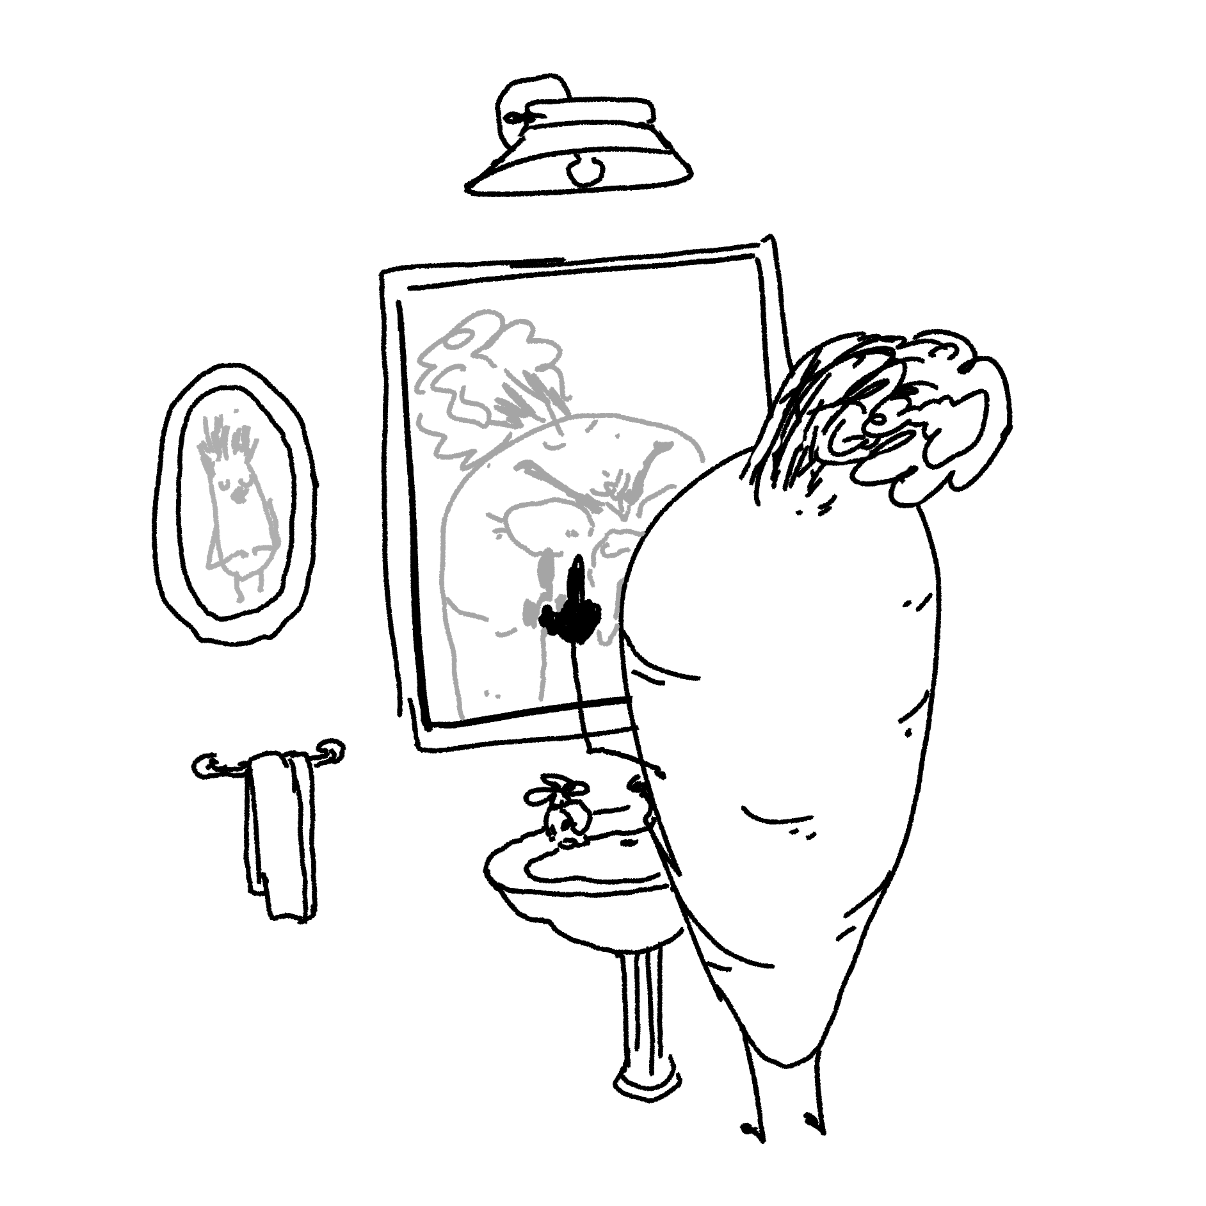 Drawing in Don't Carrot All by Potato Man